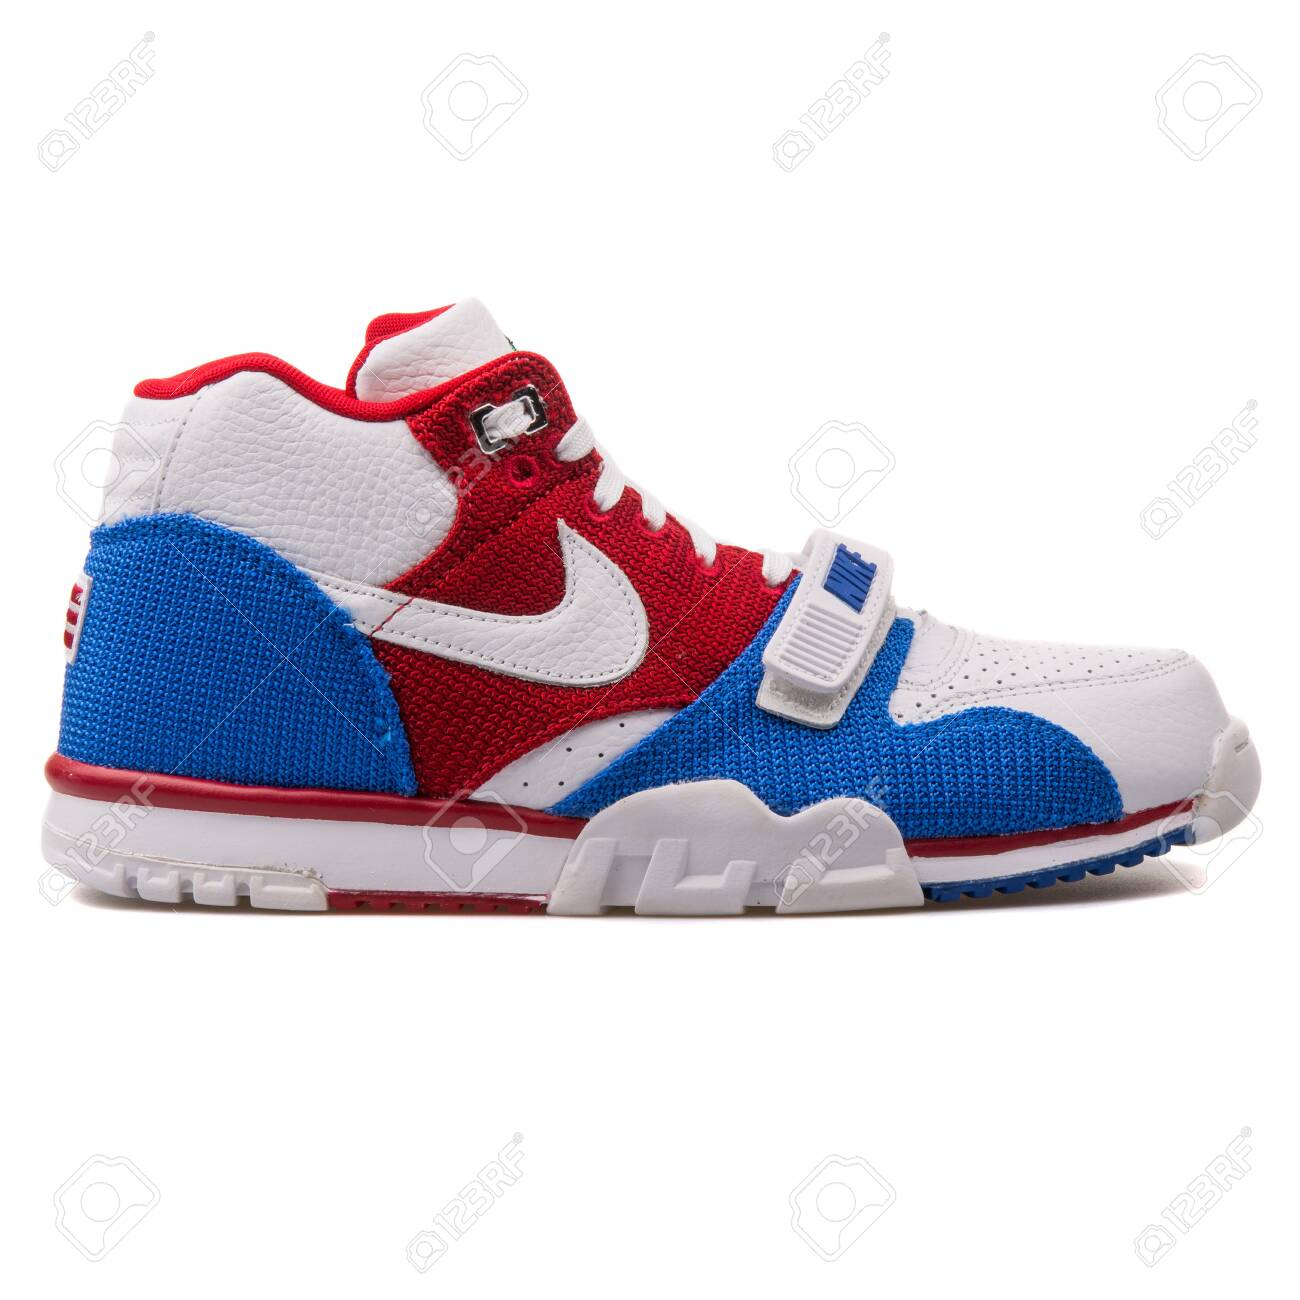 the best new high sneakers for cheap VIENNA, AUSTRIA - AUGUST 25, 2017: Nike Air Trainer 1 Mid Premium..